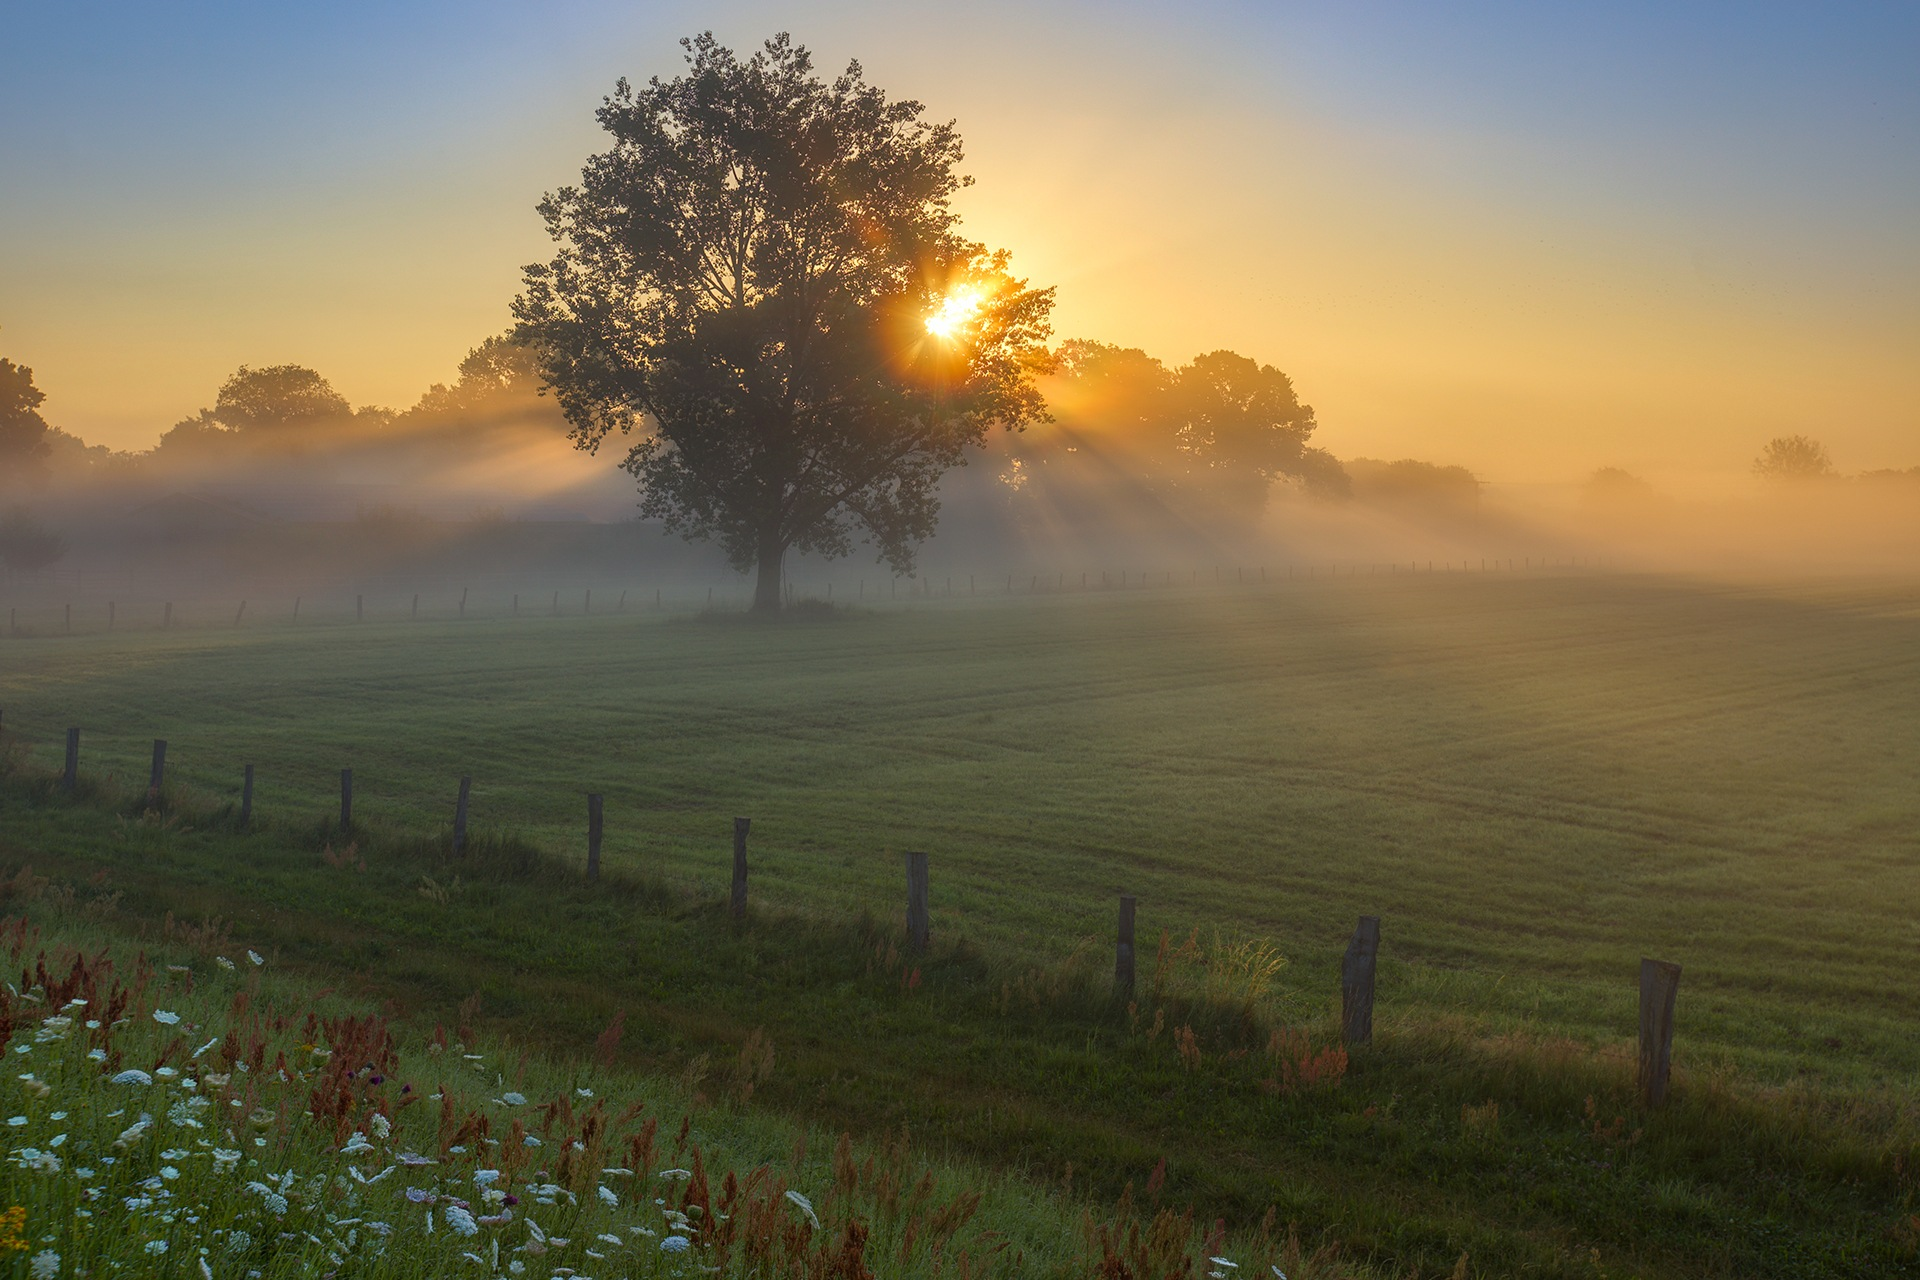 Misty morning in the countryside by Maik Richter Photography